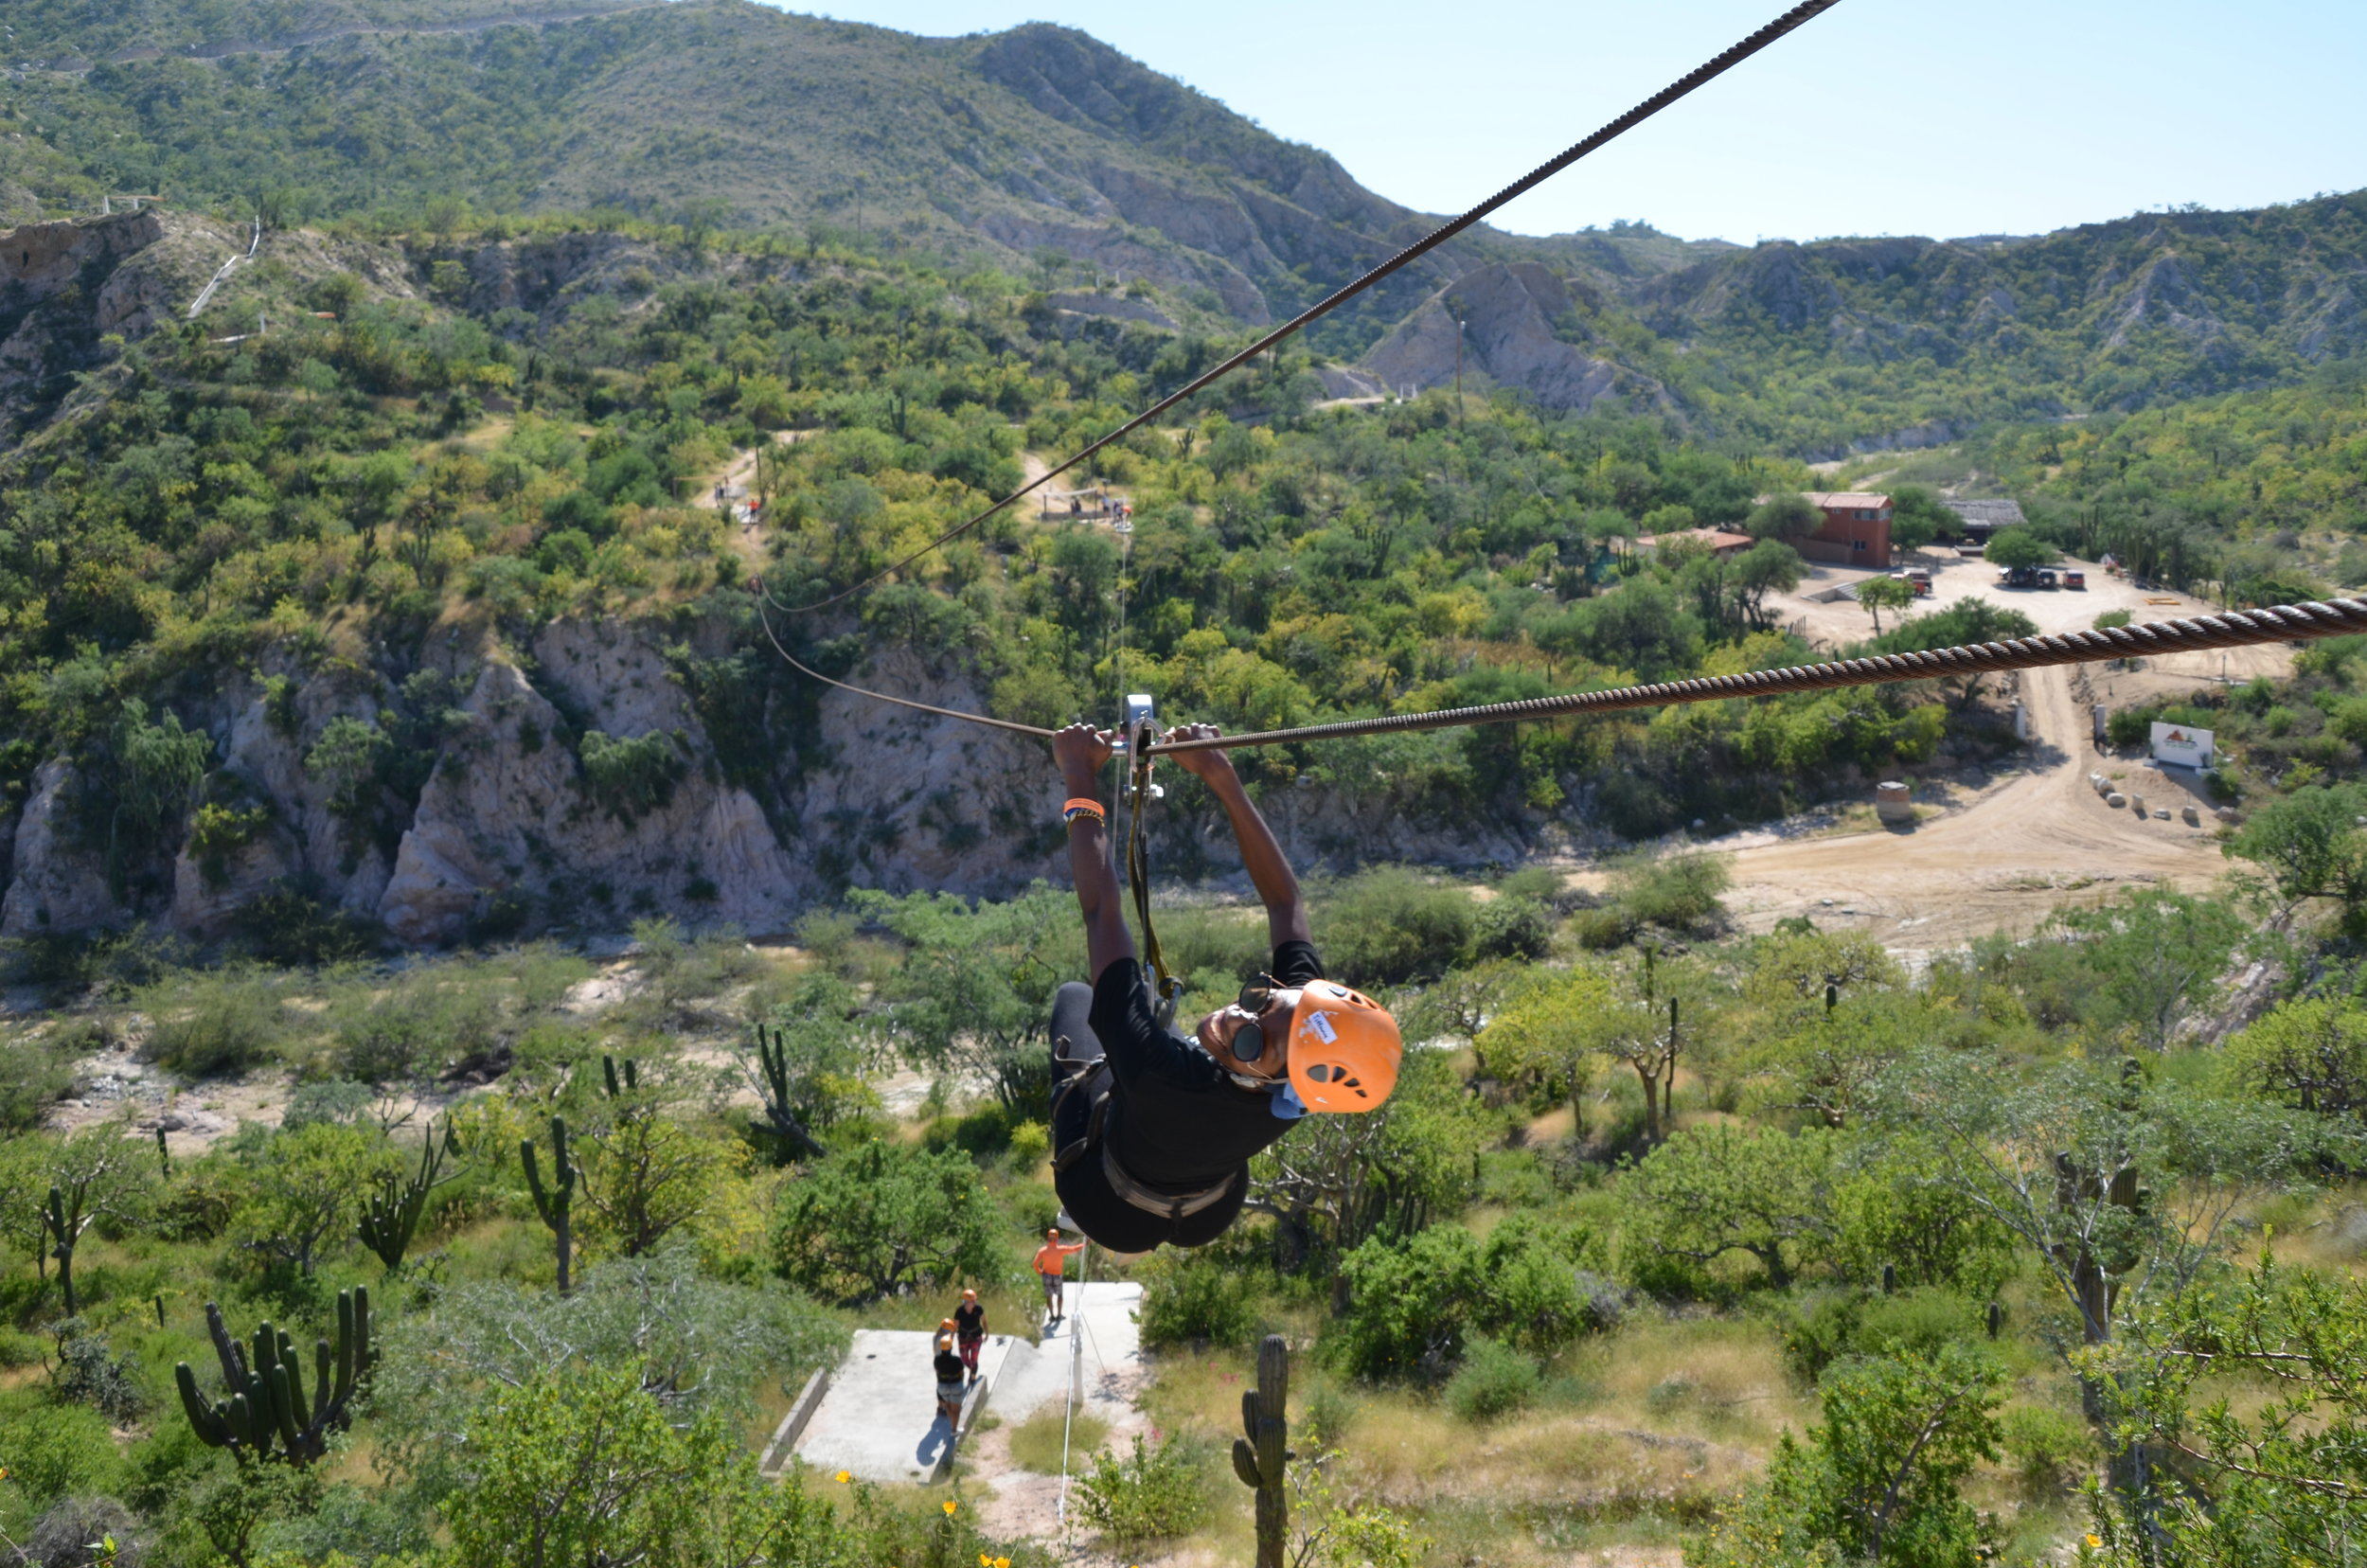 There were I think 7 different zip lines... didn't know there would be so many!!!